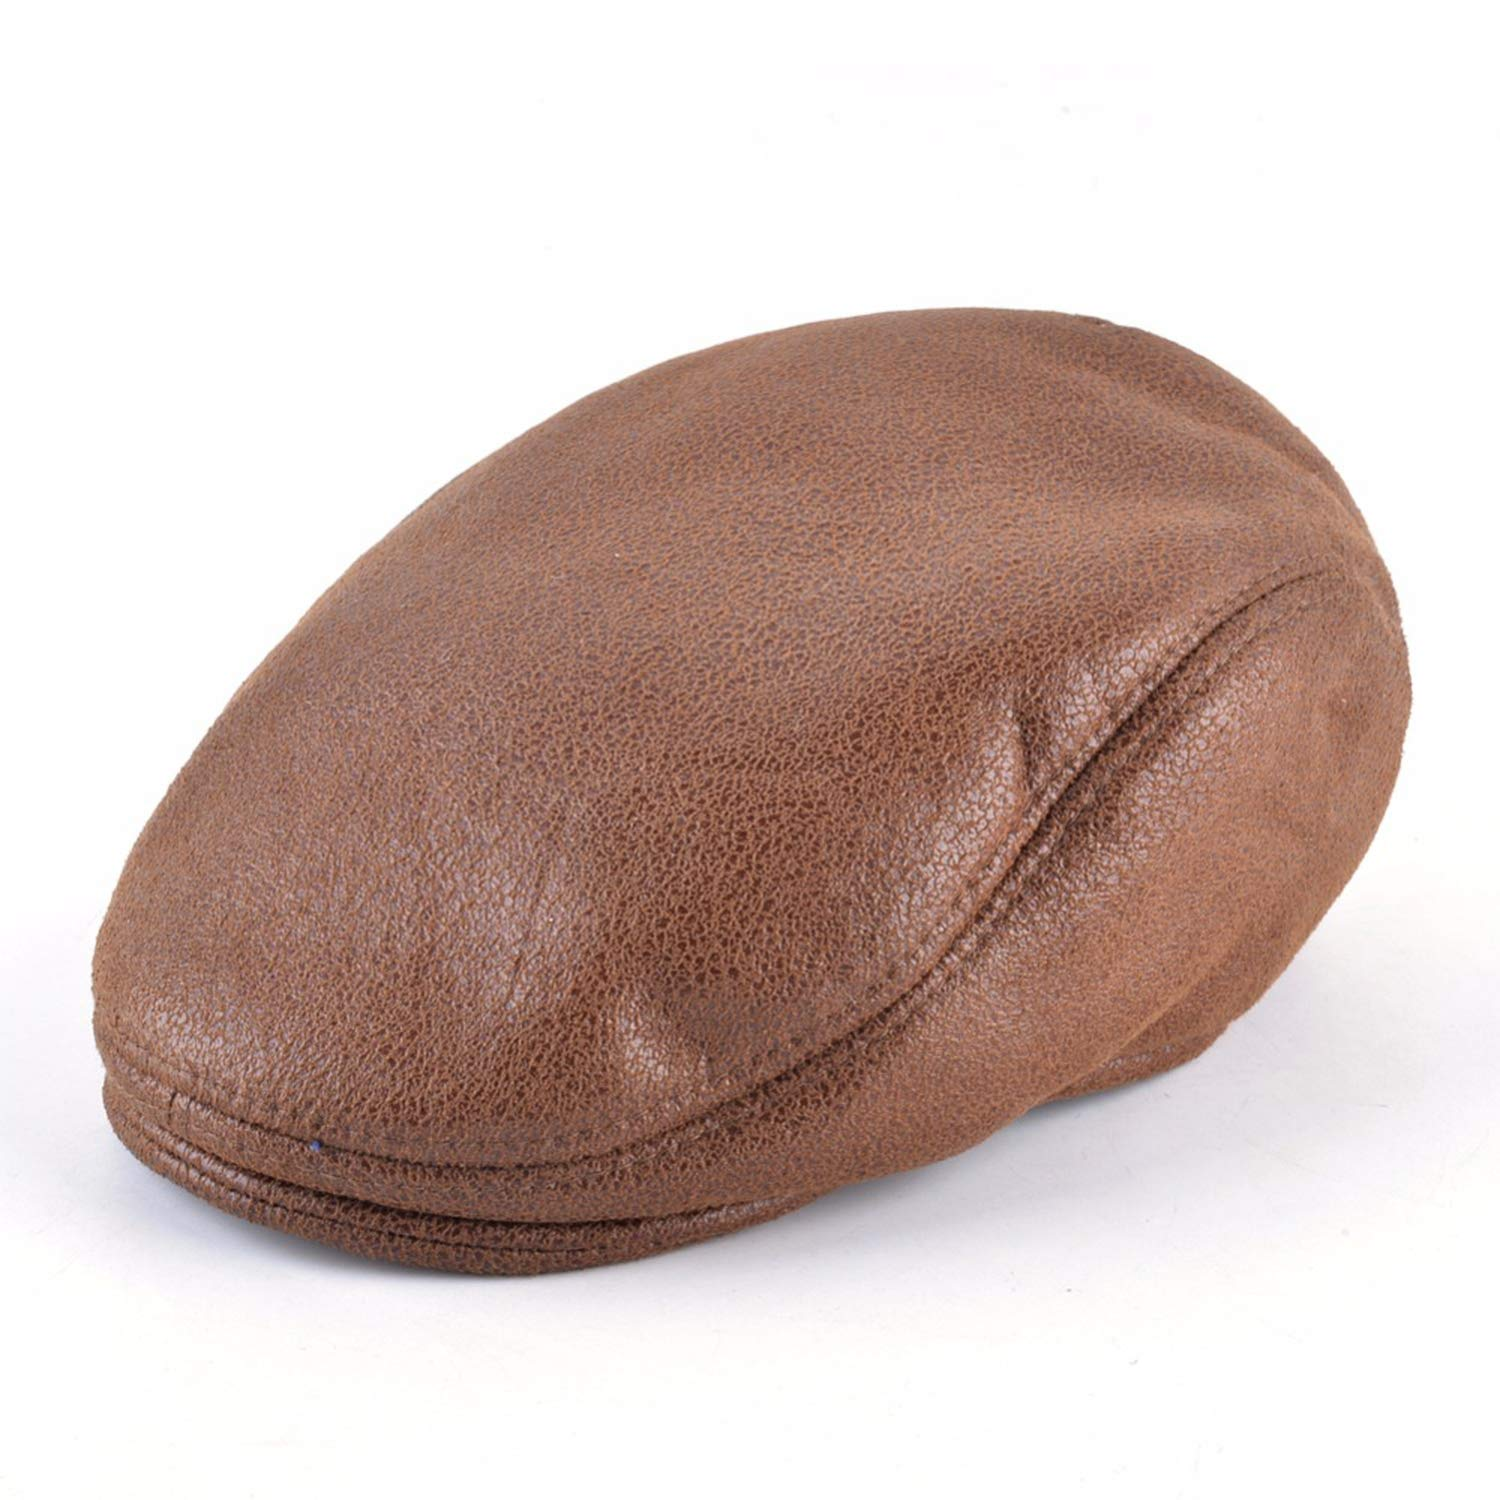 Autumn Winter Faux Leather Beret Hats Women Double Layer Thick Unisex Flat Visor Solid Newsboy Berets Boina